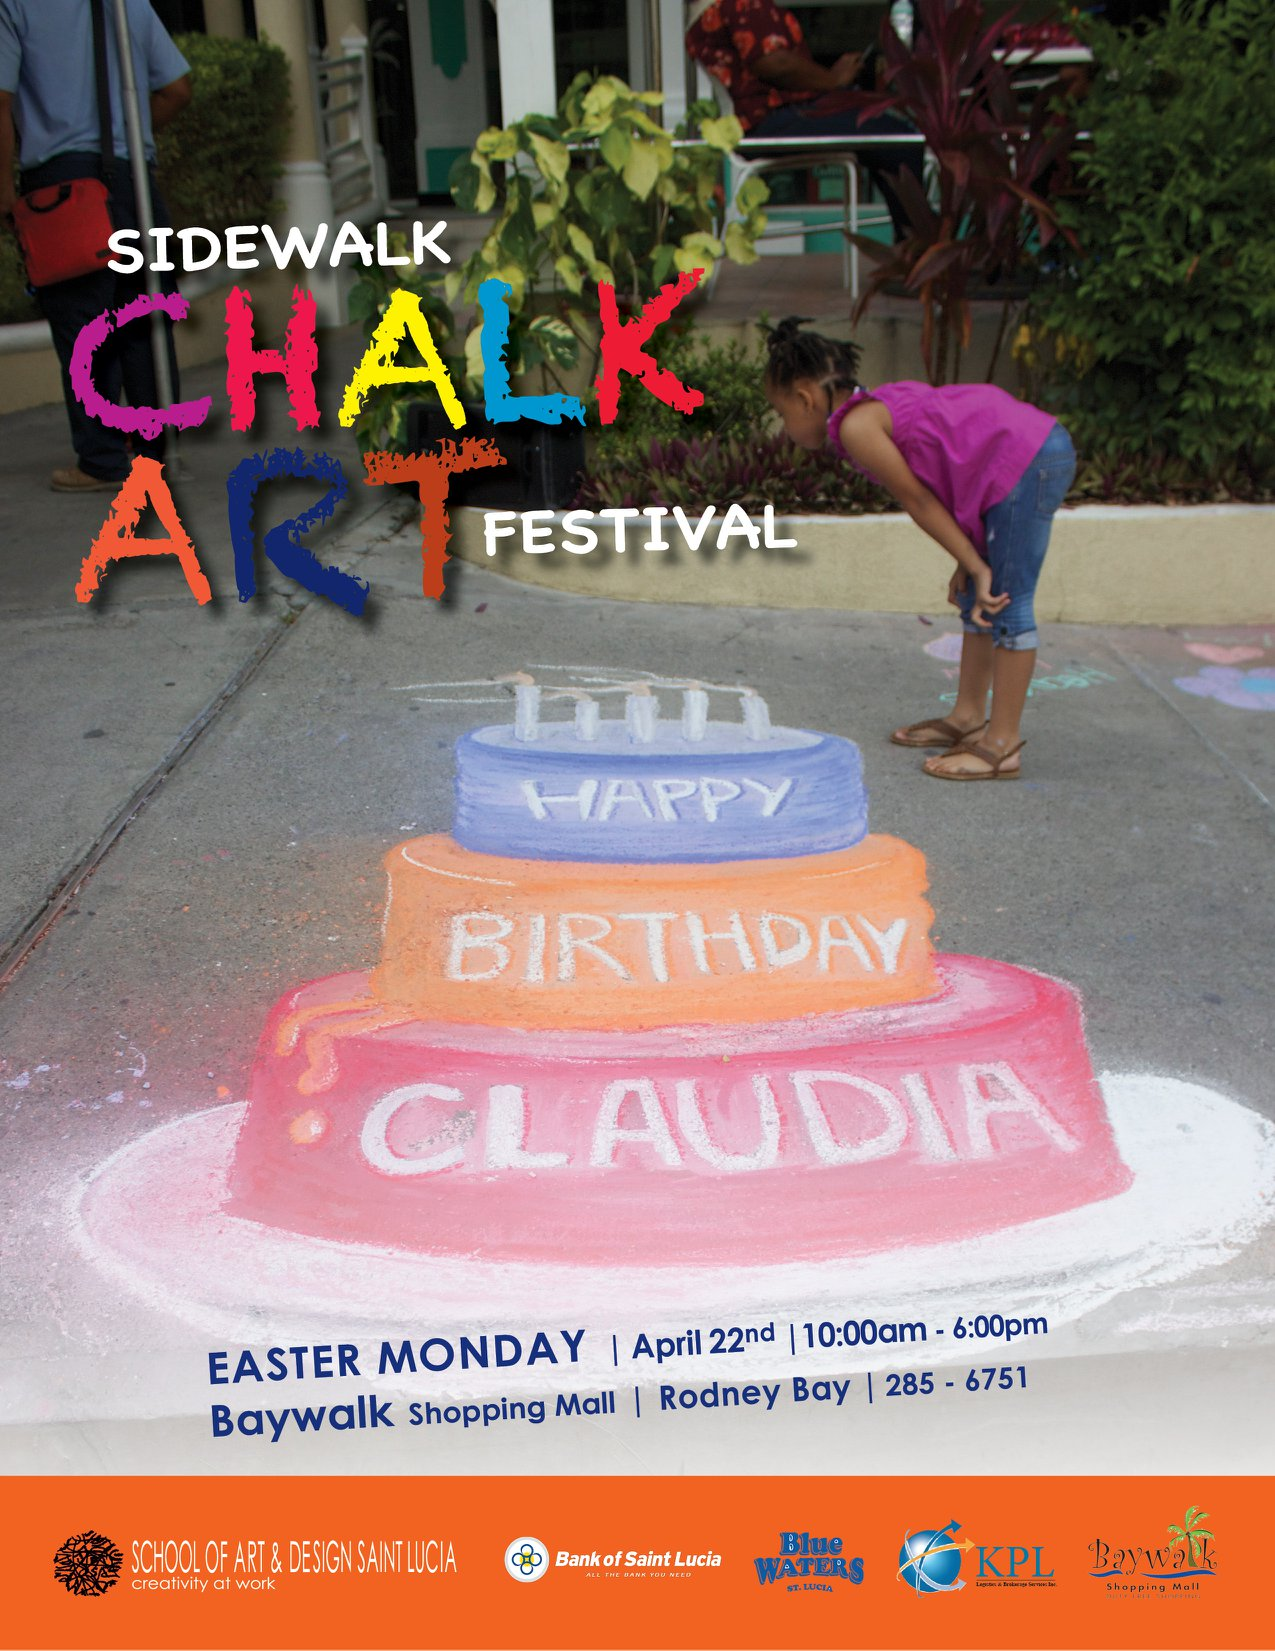 chalk art festival rodney bay st lucia school of art & design st lucia free event suitable for kids and adults